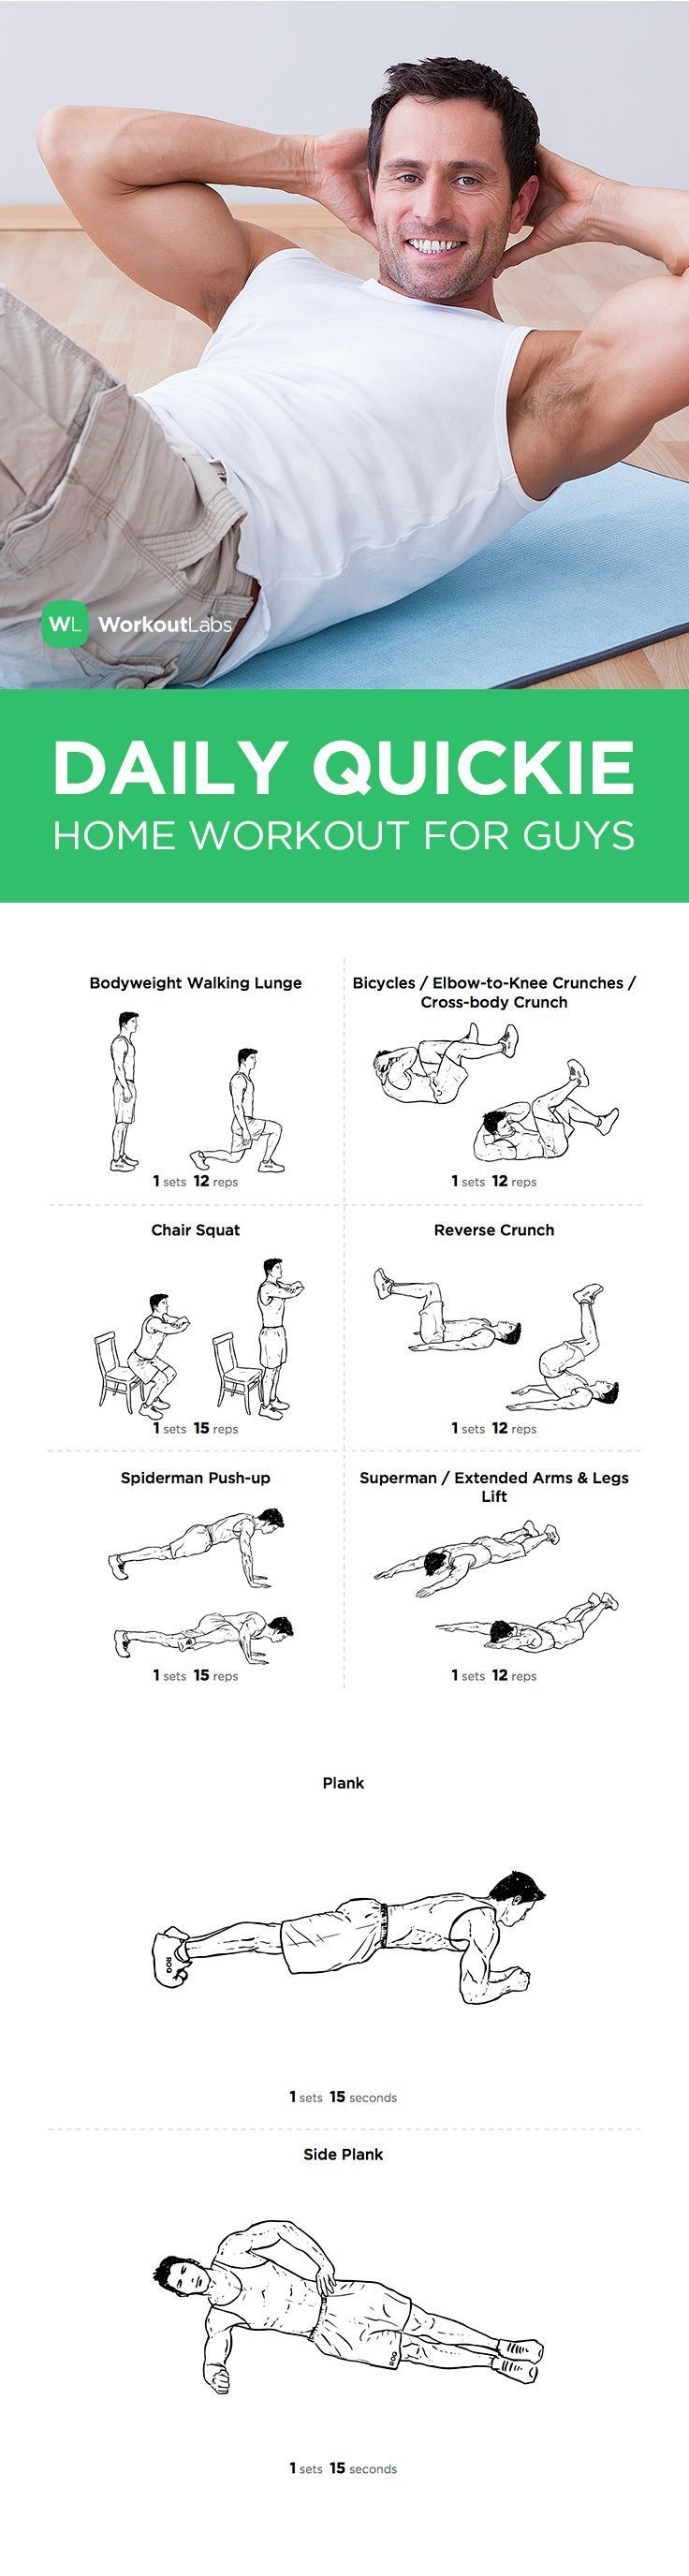 FREE PDF: Daily Quickie Essential at Home Workout for Guys – visit http://wlabs.me/1tuD3Ci to download!